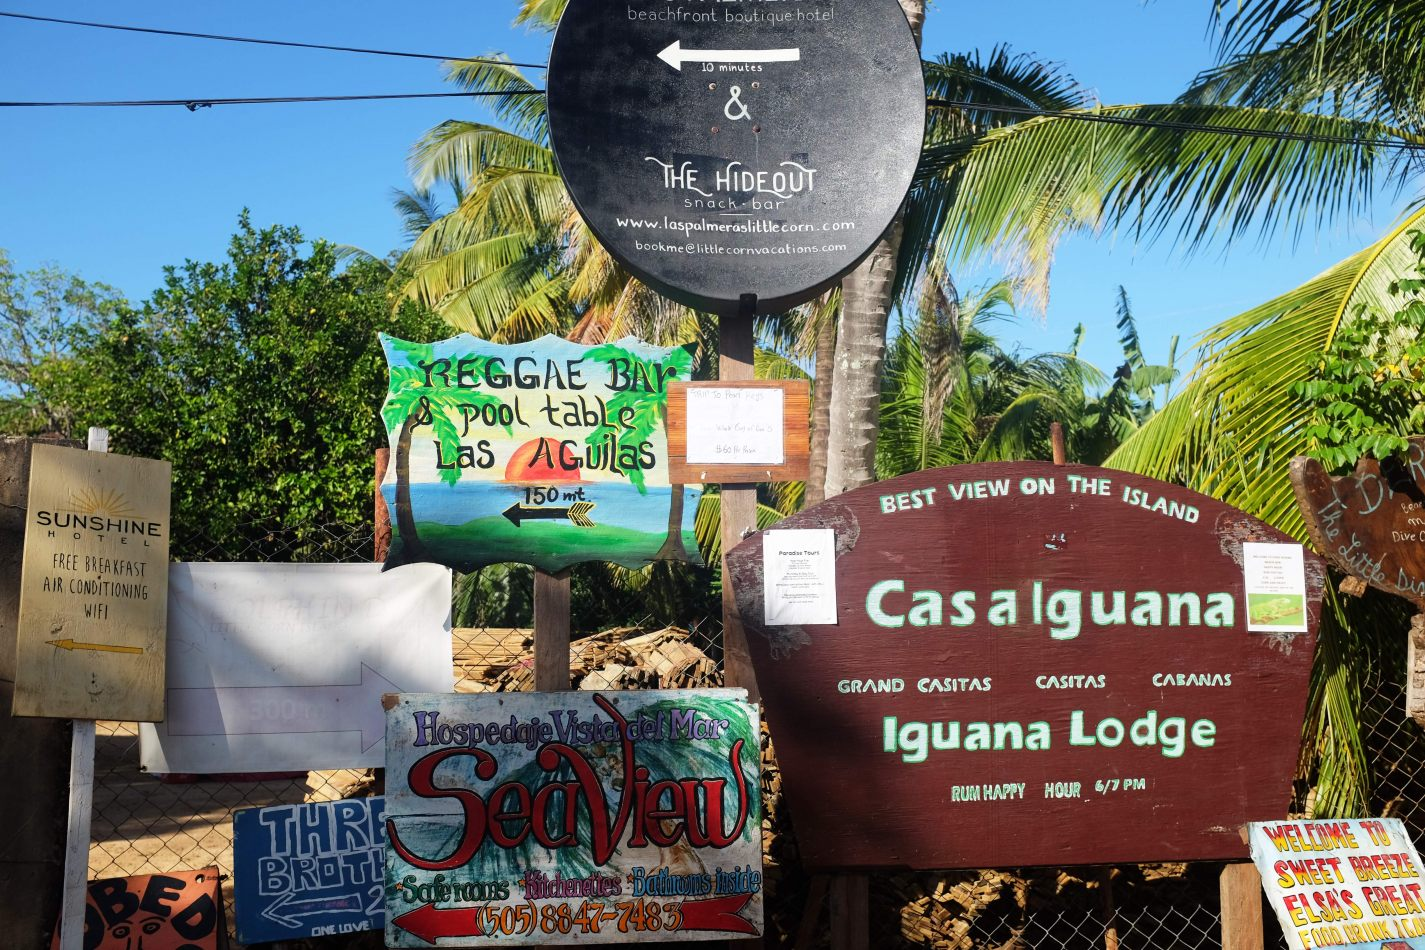 Hibiscus & Nomada : - - Little Corn Island hotels